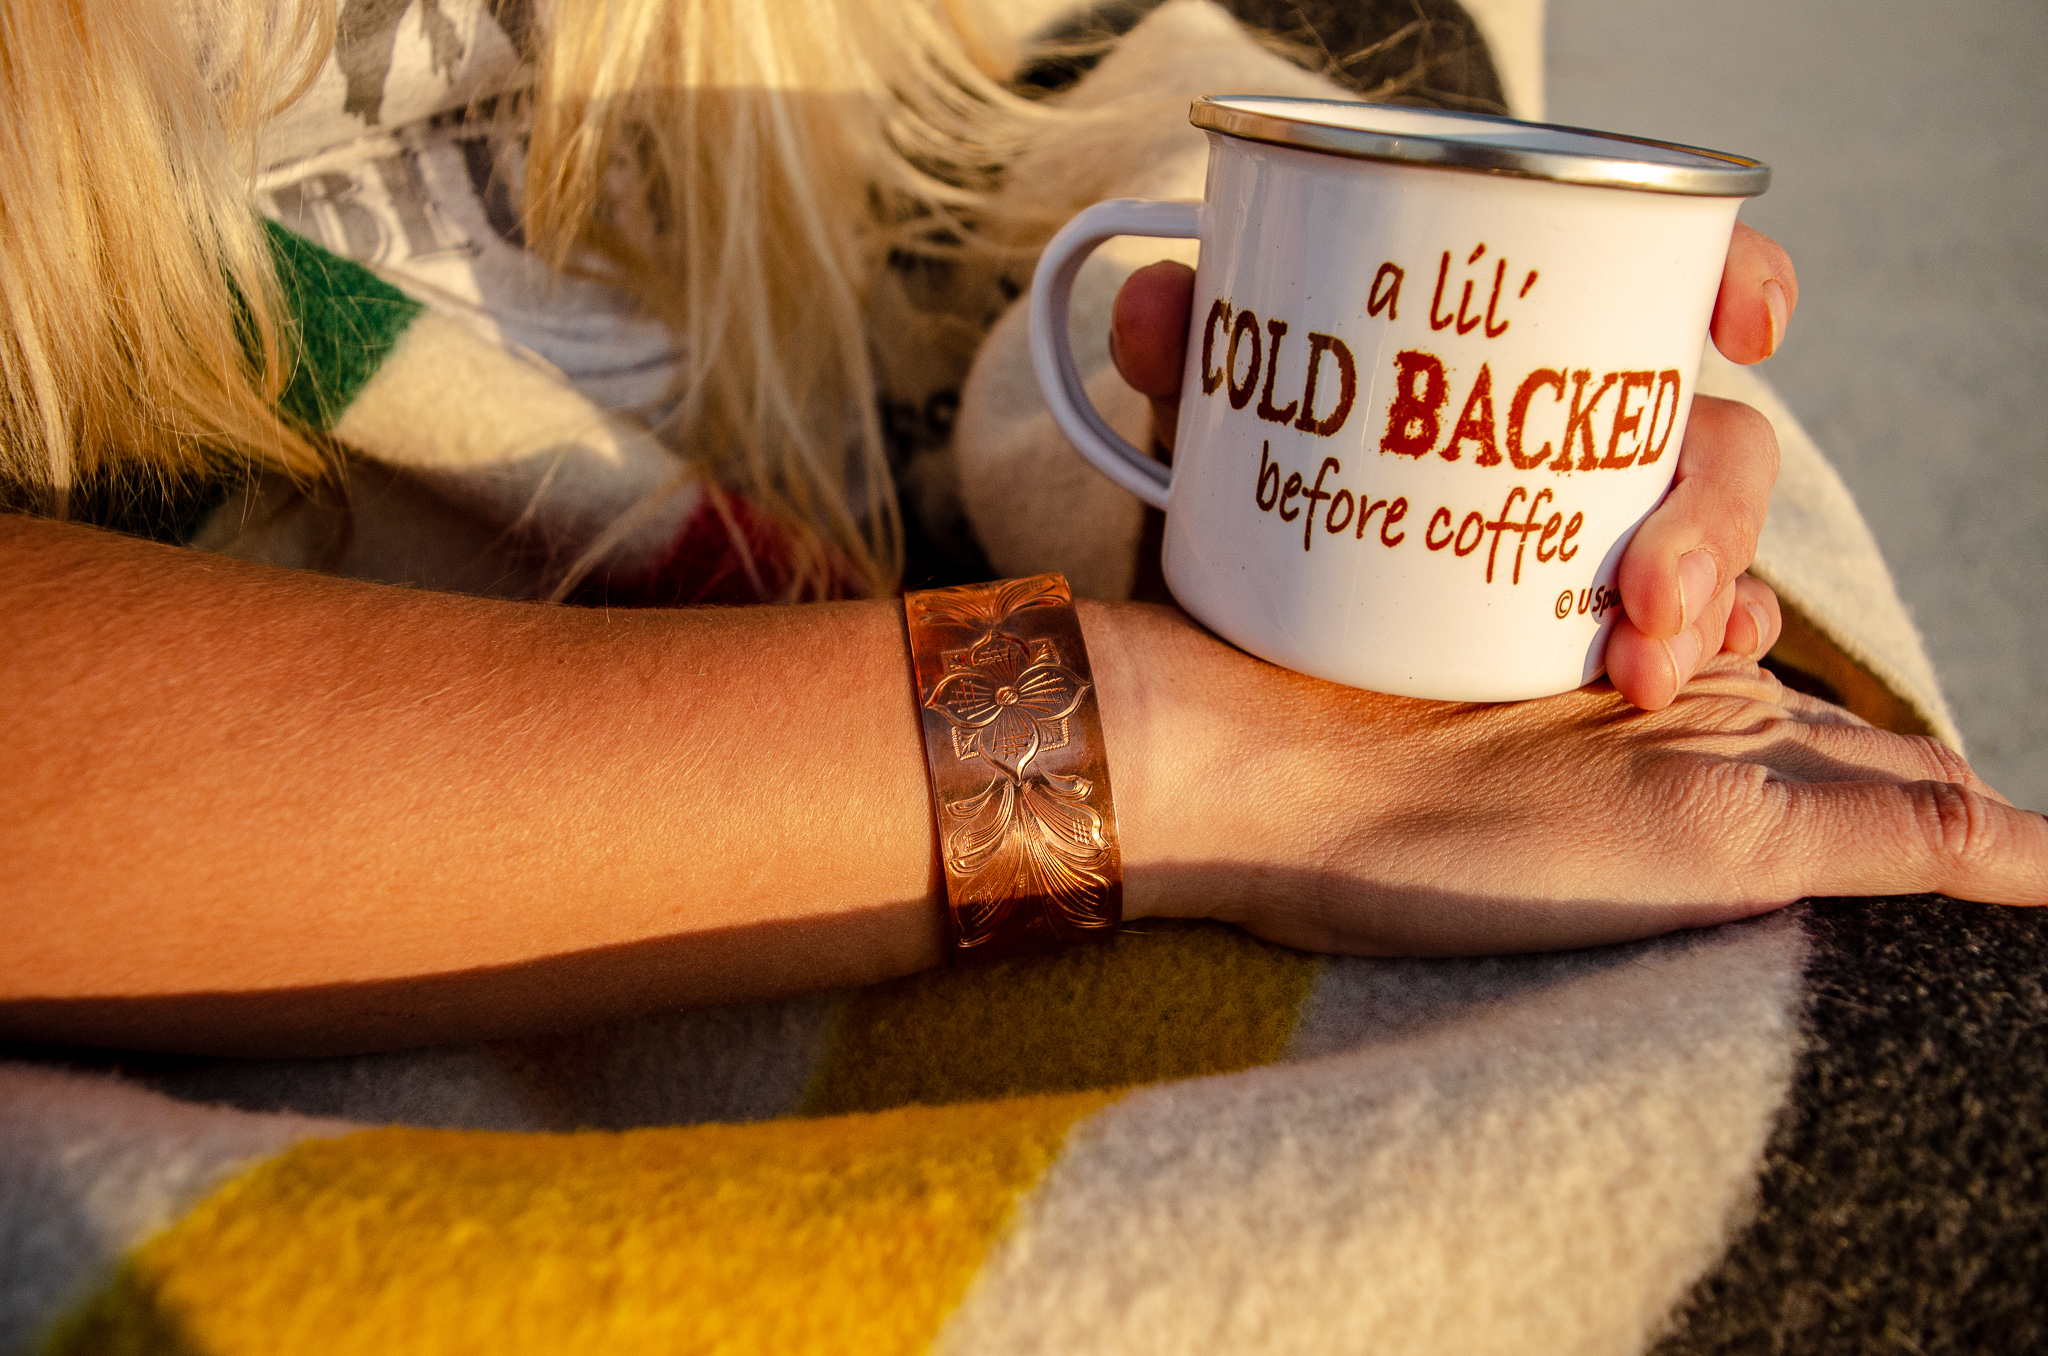 Copper cuff by The South Fork Outfit,  A lil Cold Backed Before Coffee  mug by U Spur.